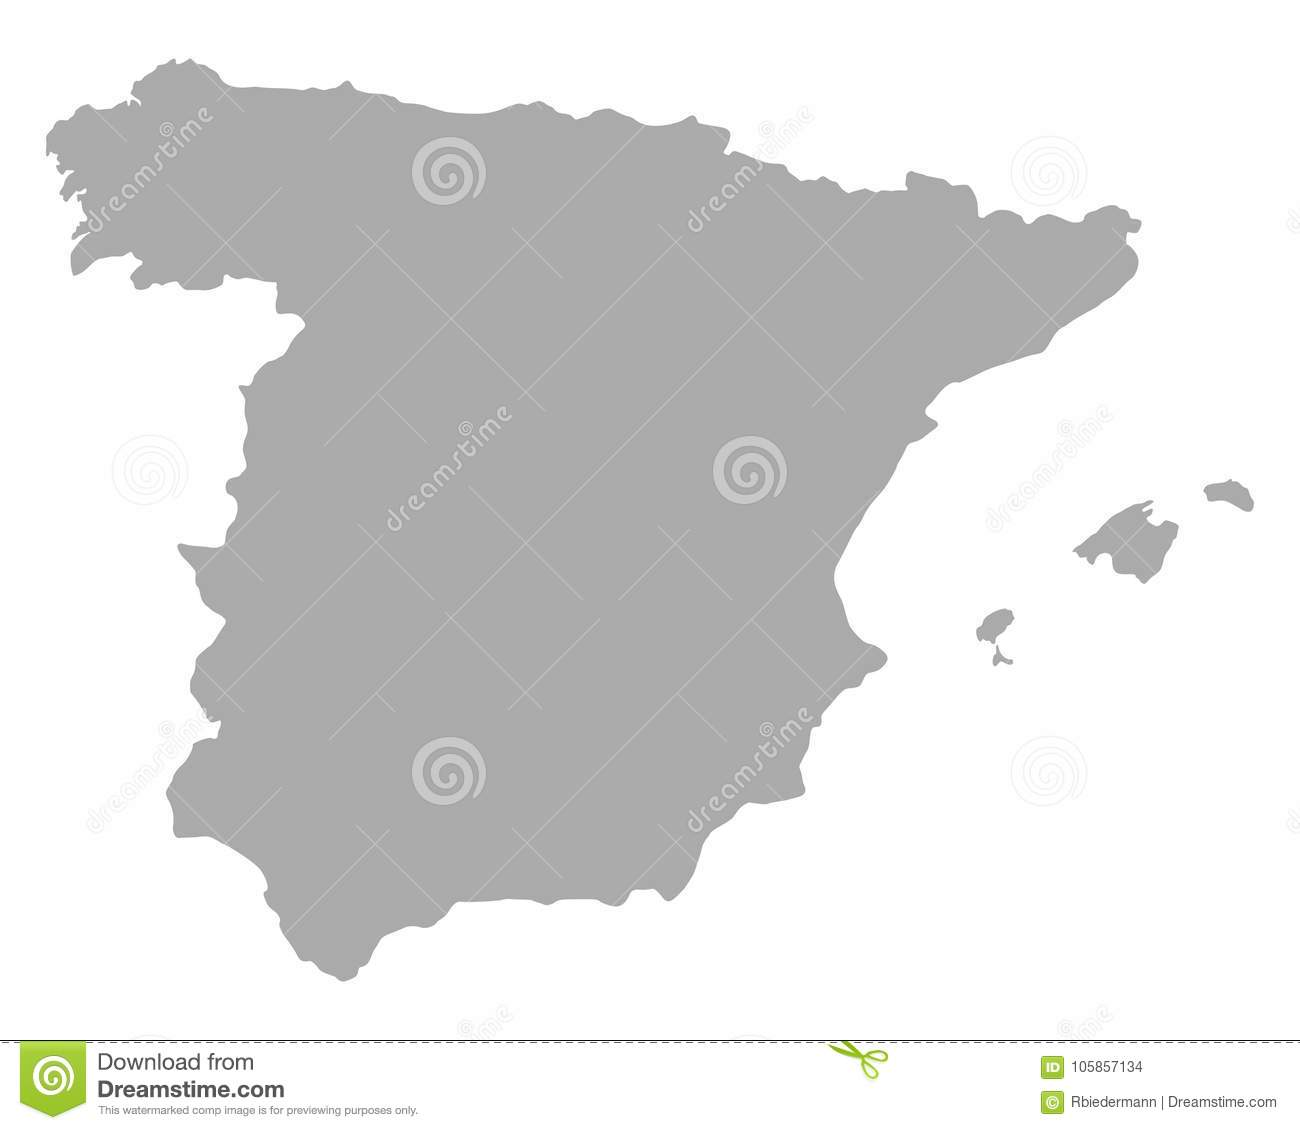 Map Of Spain Download Free.Map Of Spain Stock Vector Illustration Of Grey Contour 105857134